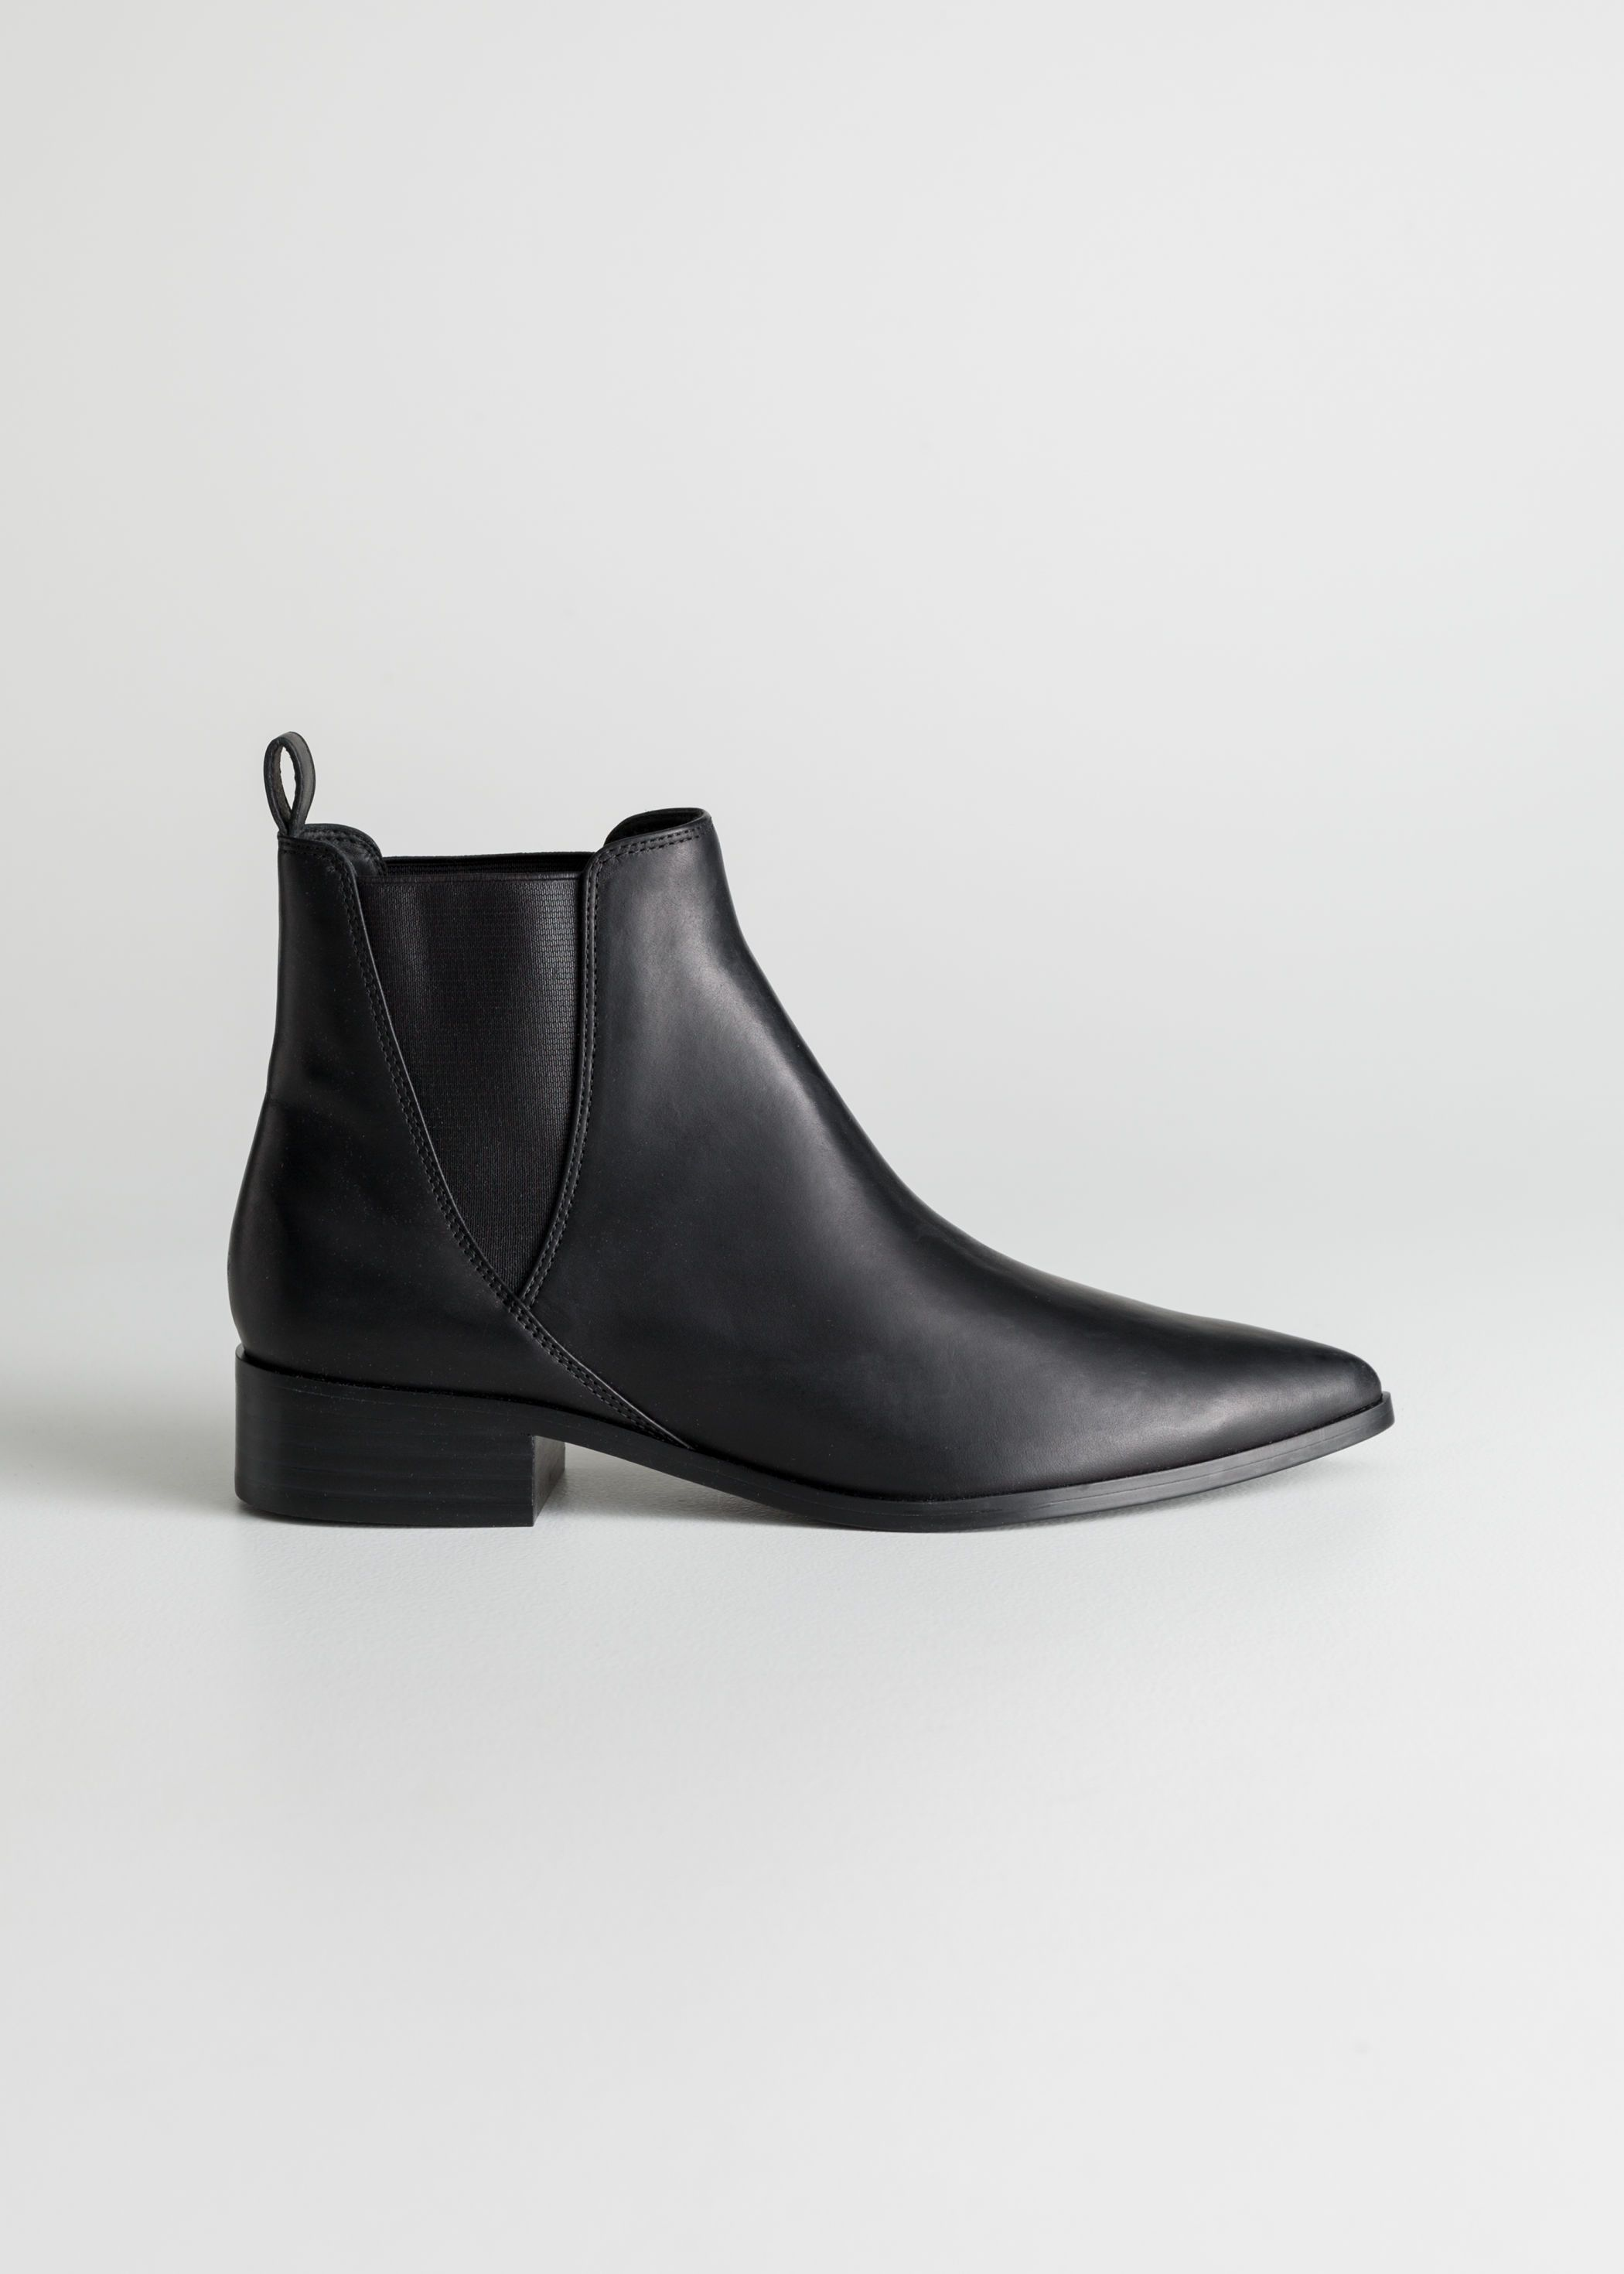 Boots for bunions | Flat, heeled, ankle